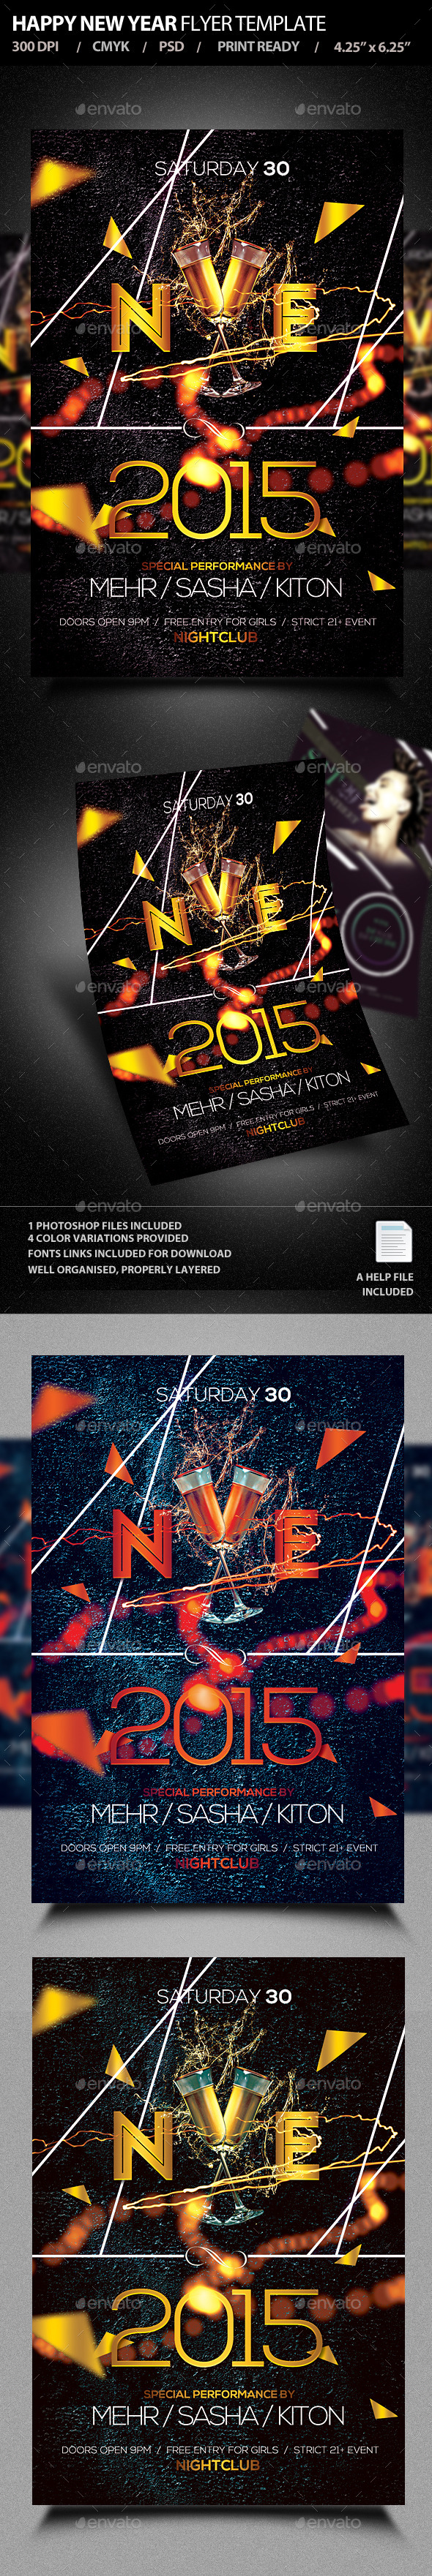 Happy New Year Flyer Template PSD V3 - Clubs & Parties Events